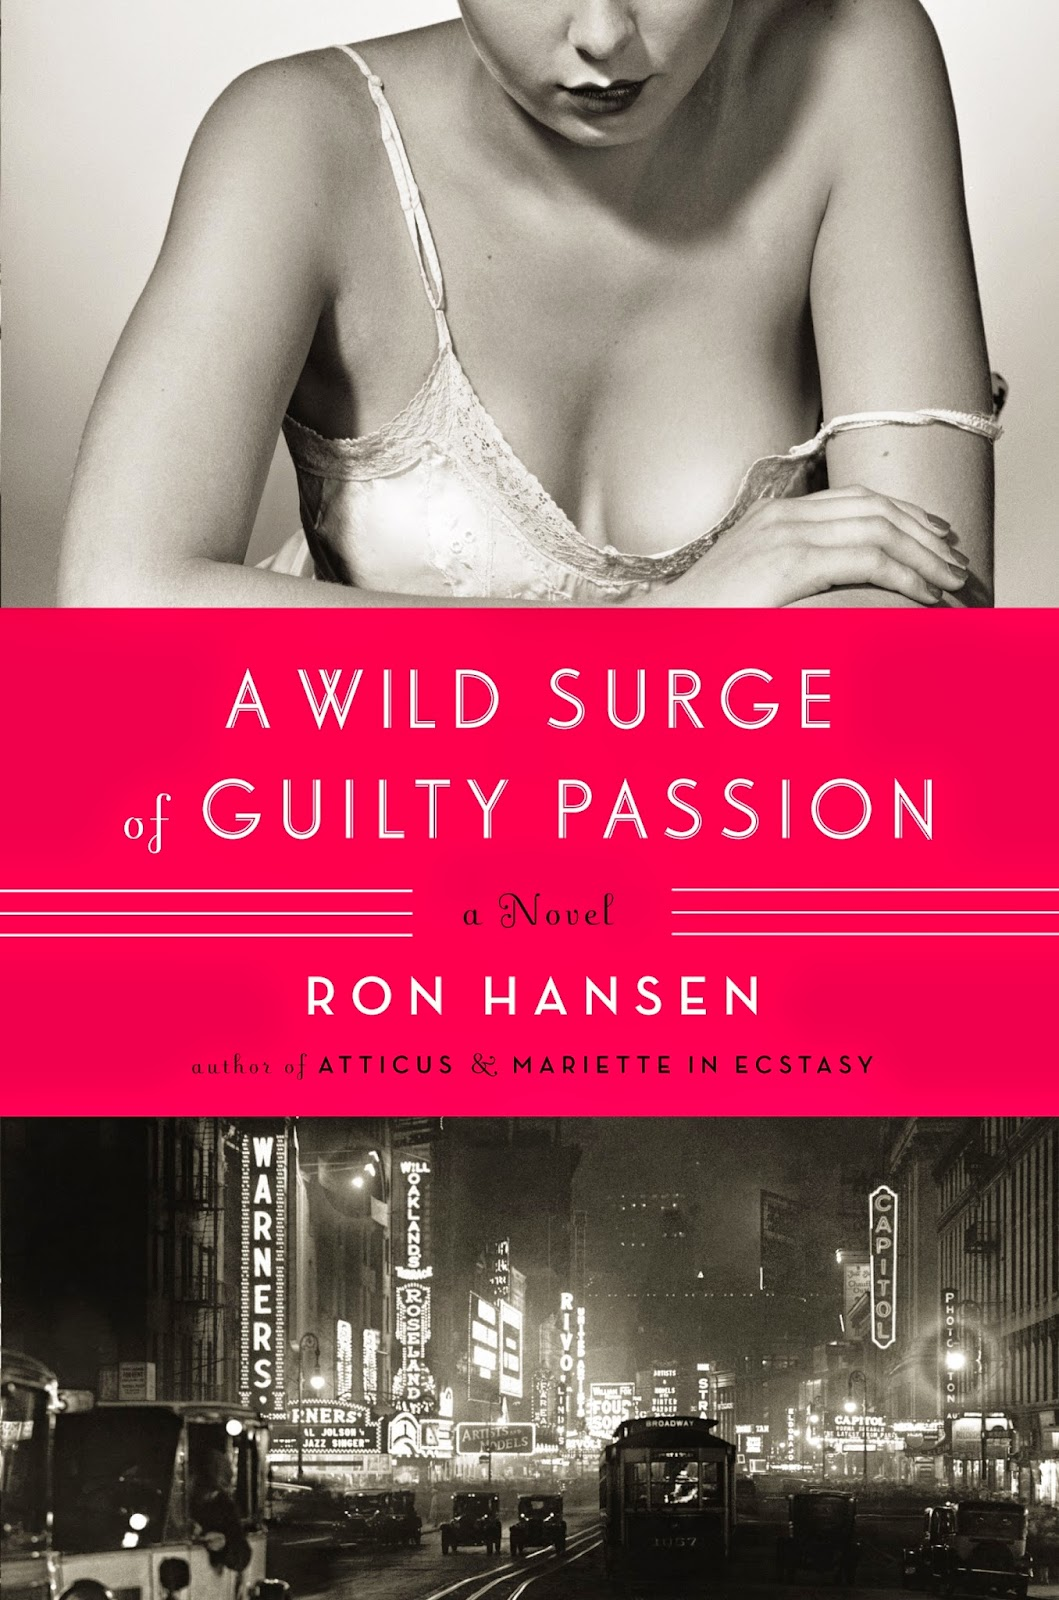 http://discover.halifaxpubliclibraries.ca/?q=title:wild surge of guilty passion